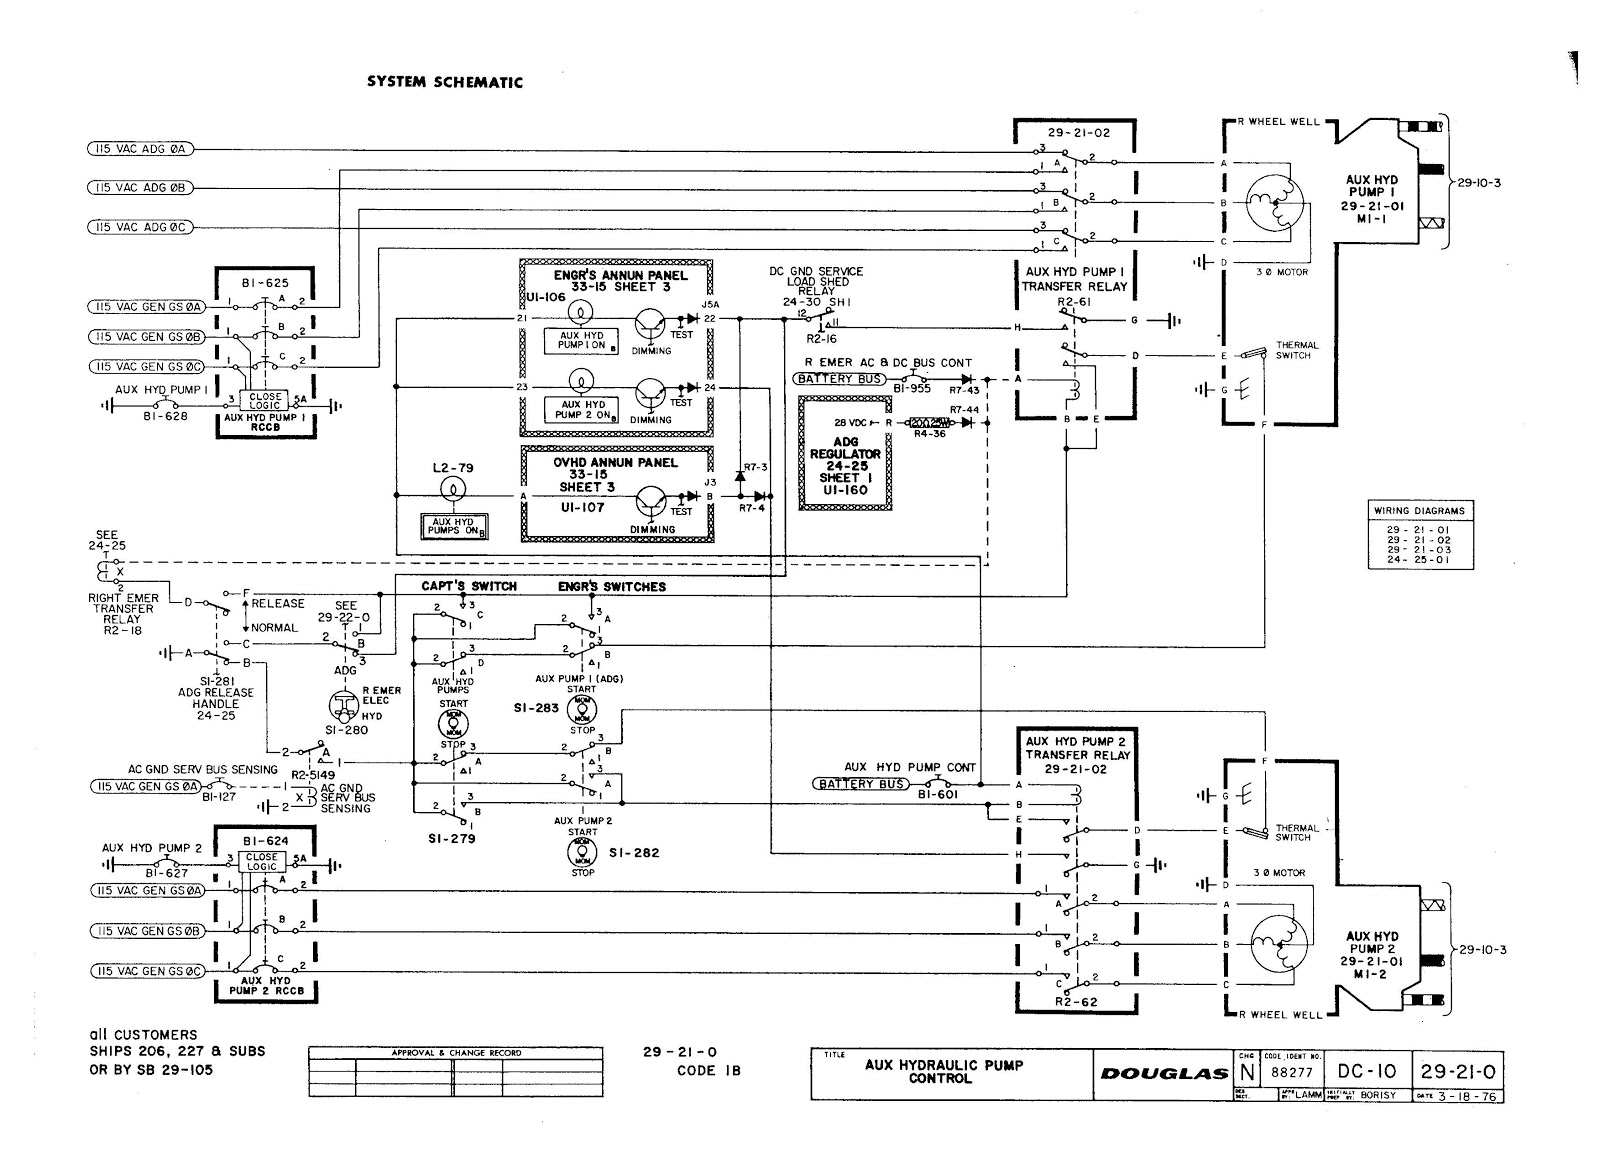 part 66 virtual school aircraft wiring and schematic diagrams schematic diagram dc10 hydraulic system